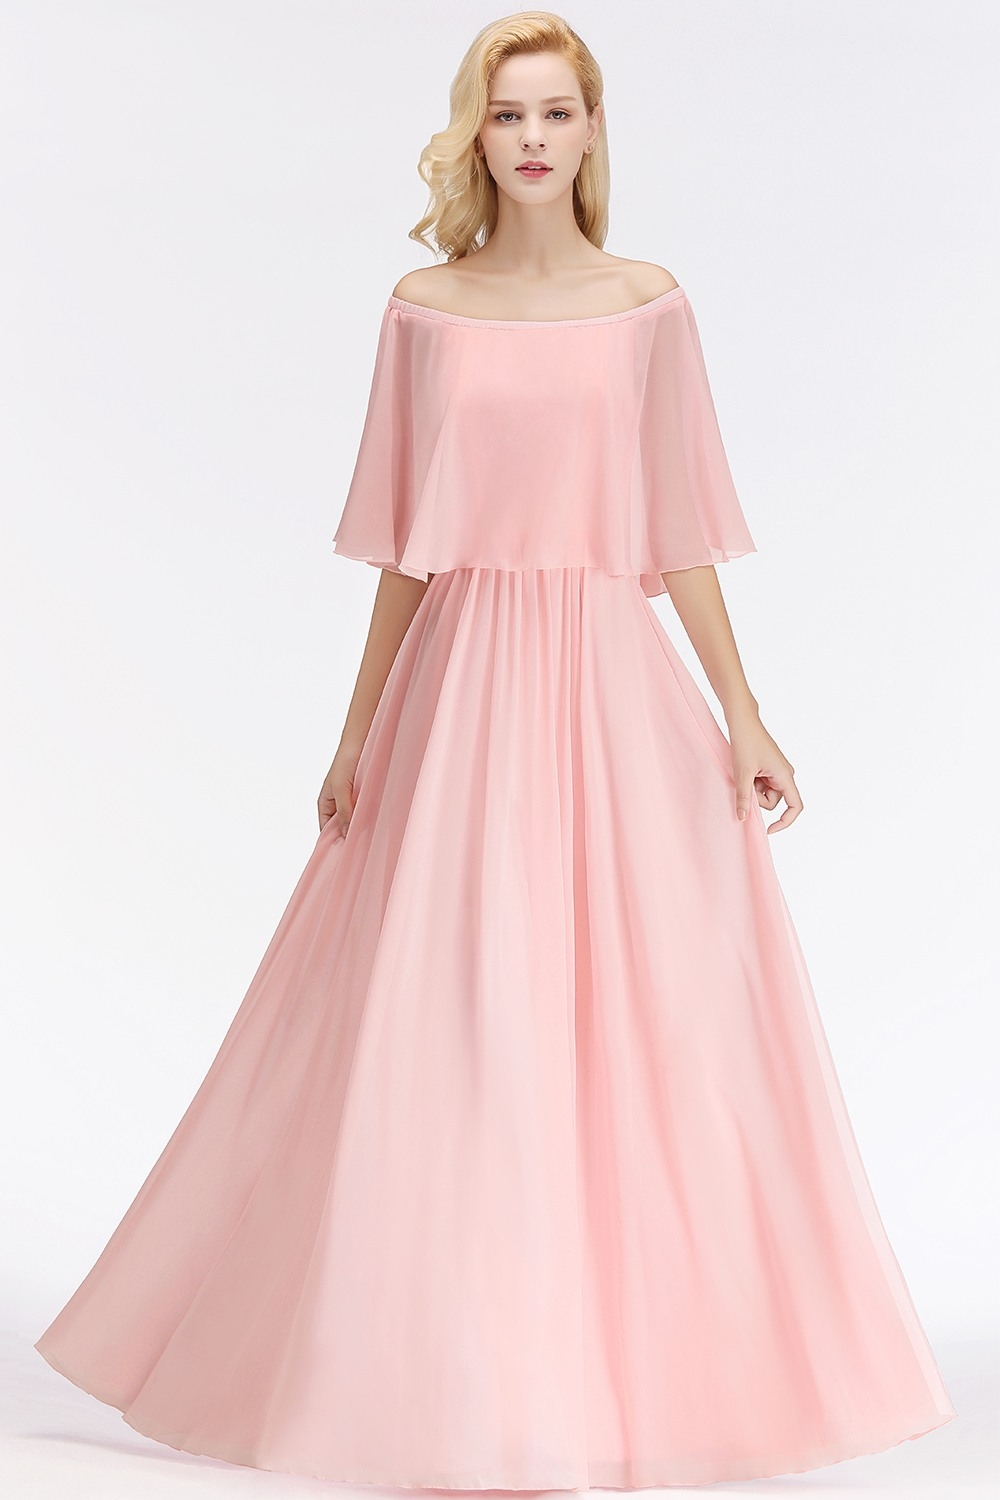 Formal Luxurius Kleid Rosa Lang Spezialgebiet13 Top Kleid Rosa Lang Stylish